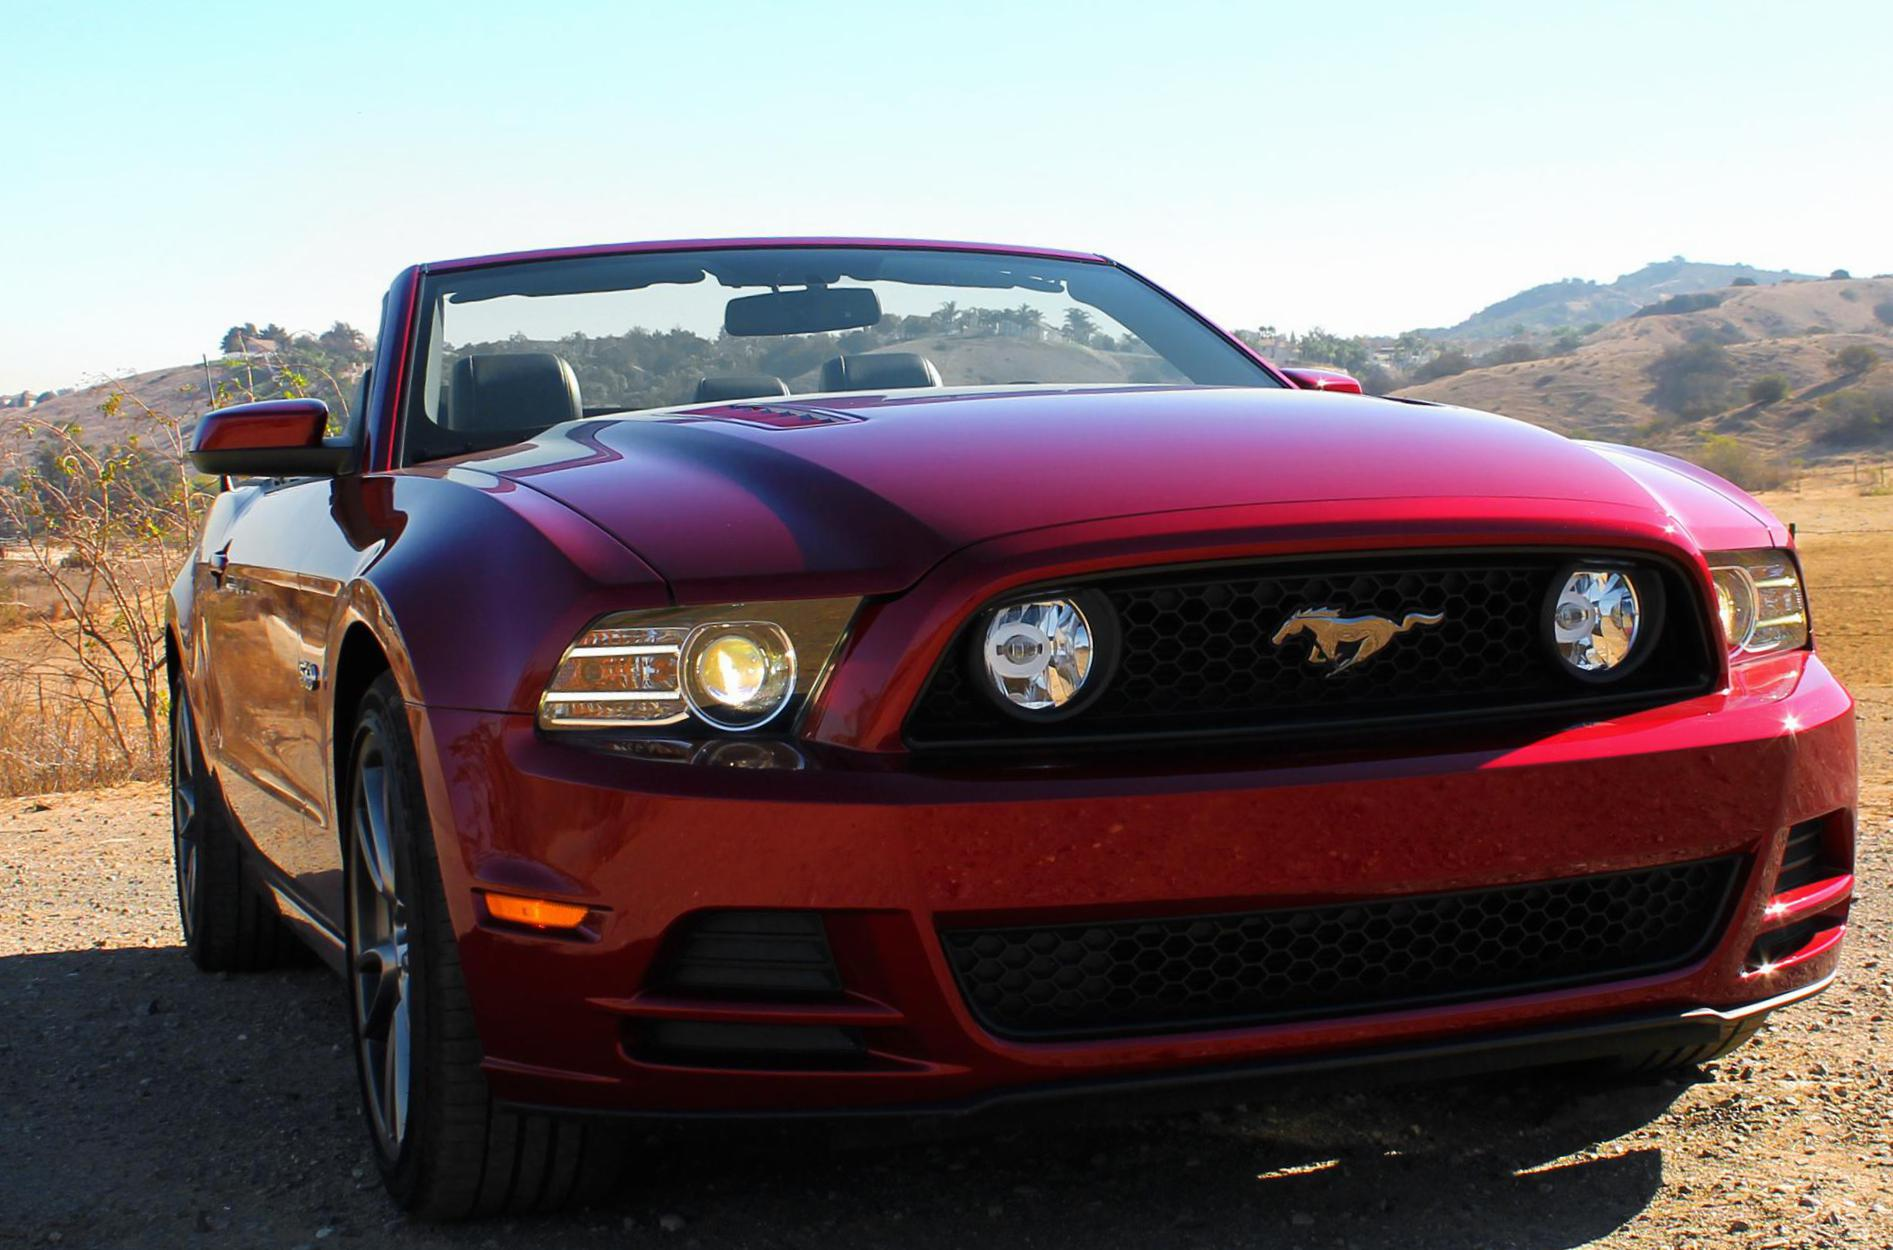 Ford Mustang Convertible configuration 2015